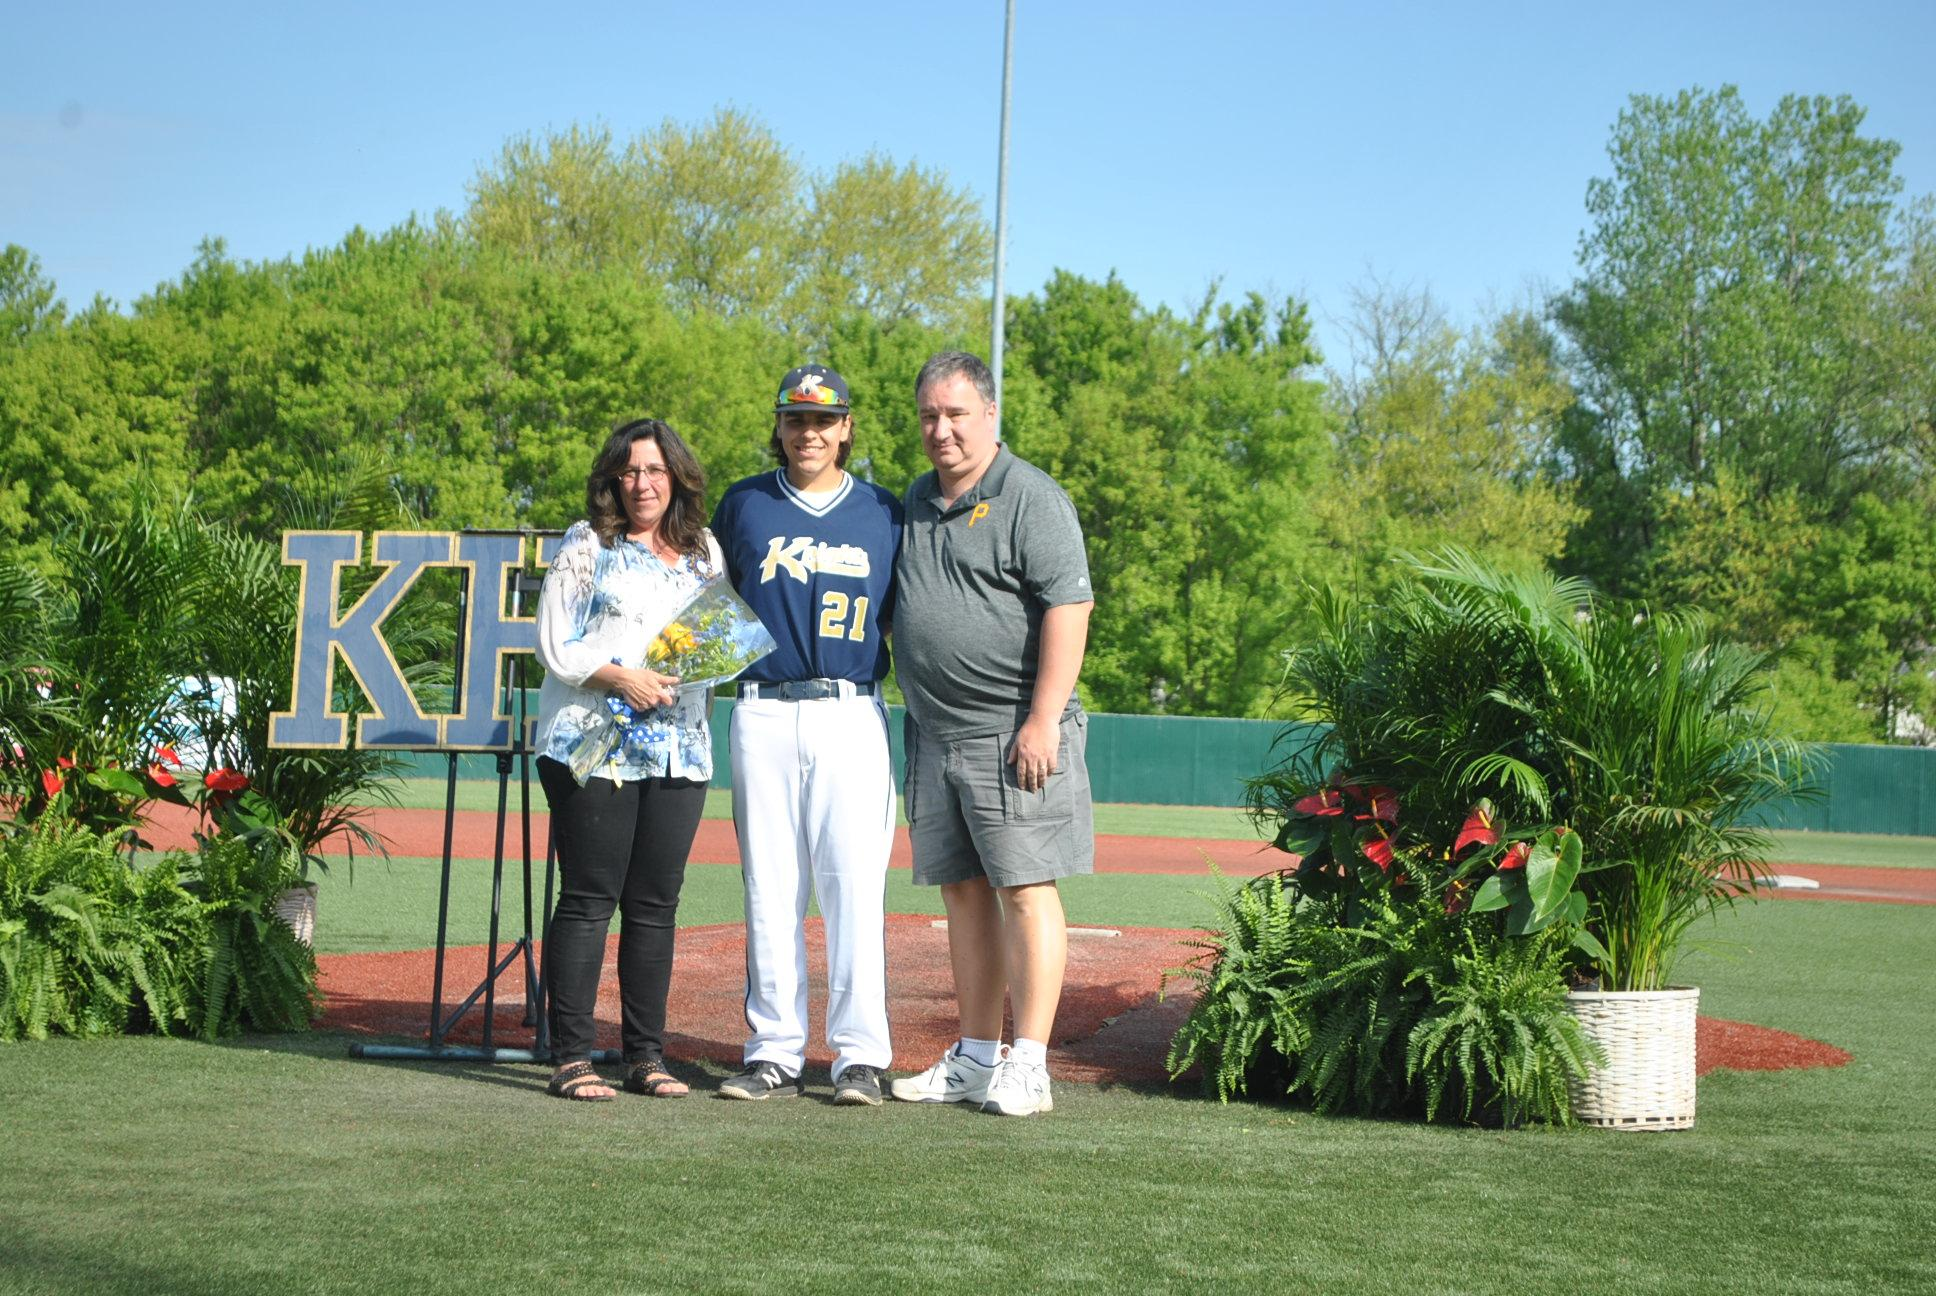 Pic of Steven McMillen and parents